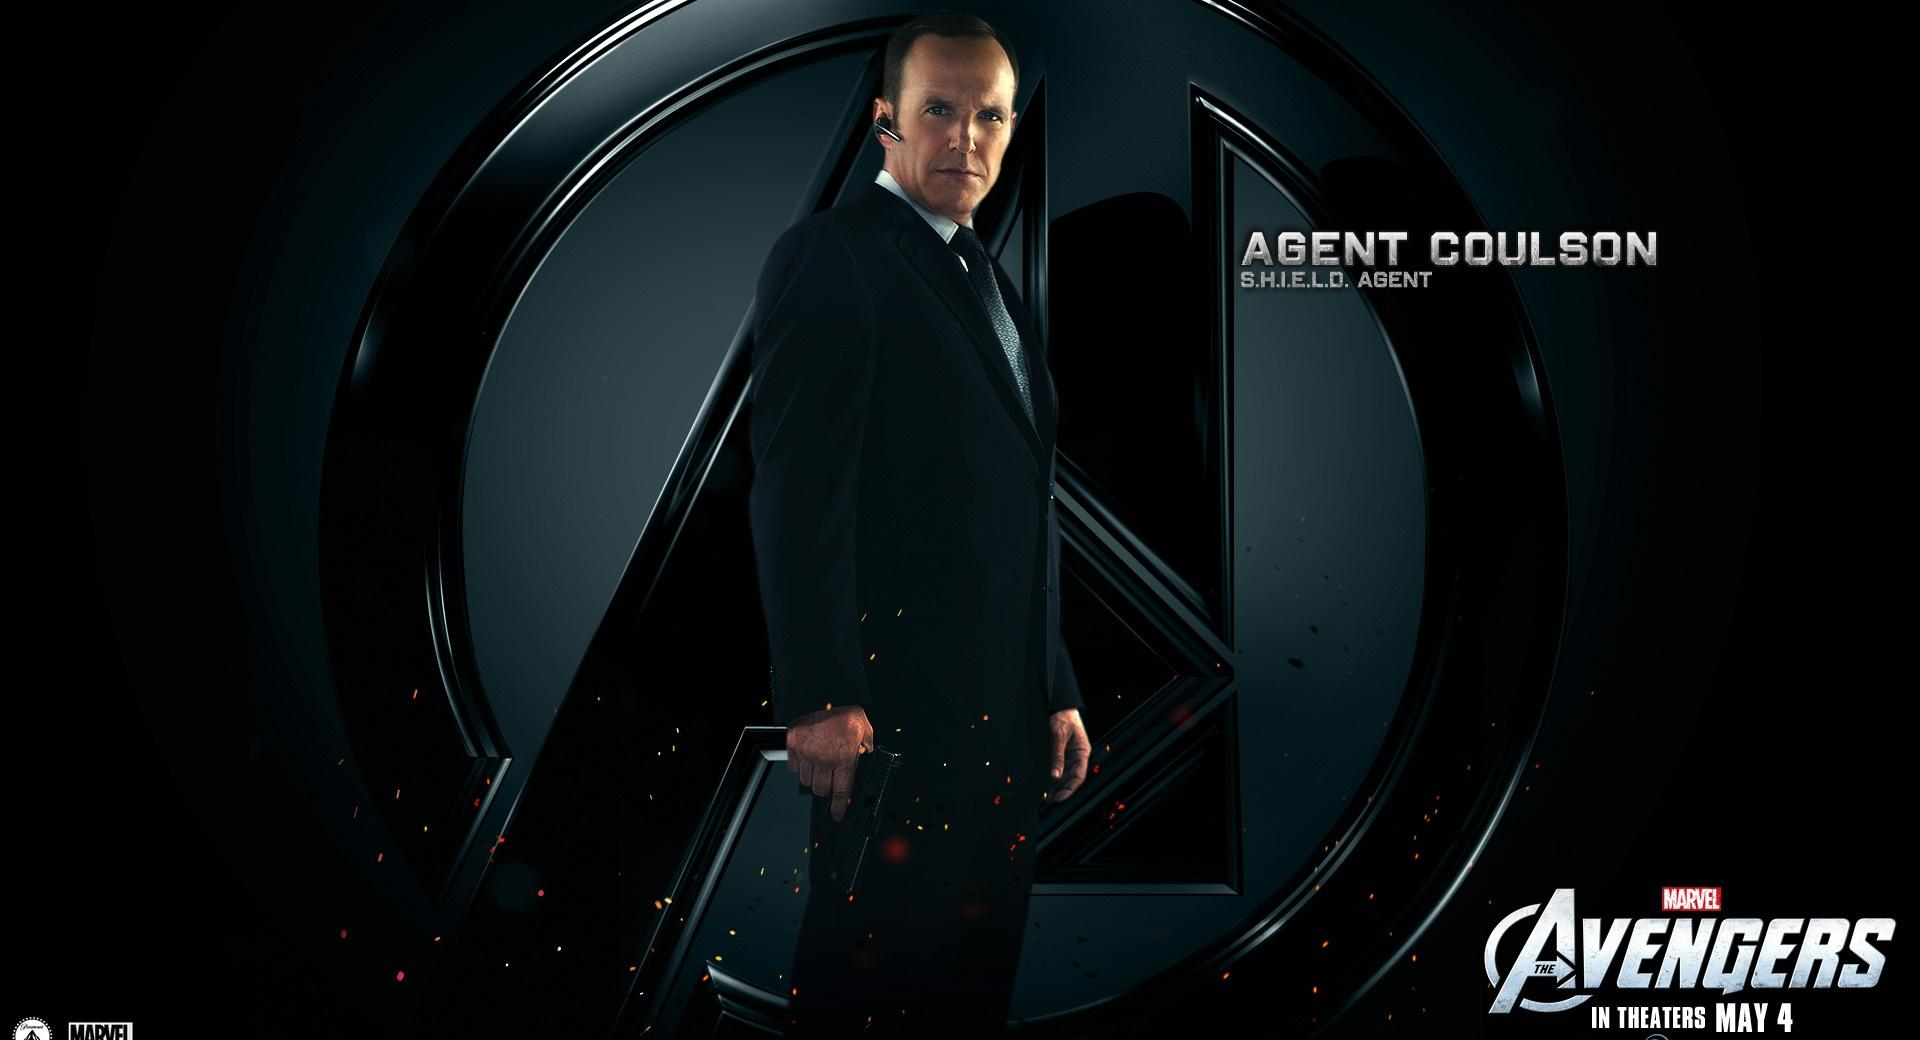 The Avengers Agent Coulson wallpapers HD quality